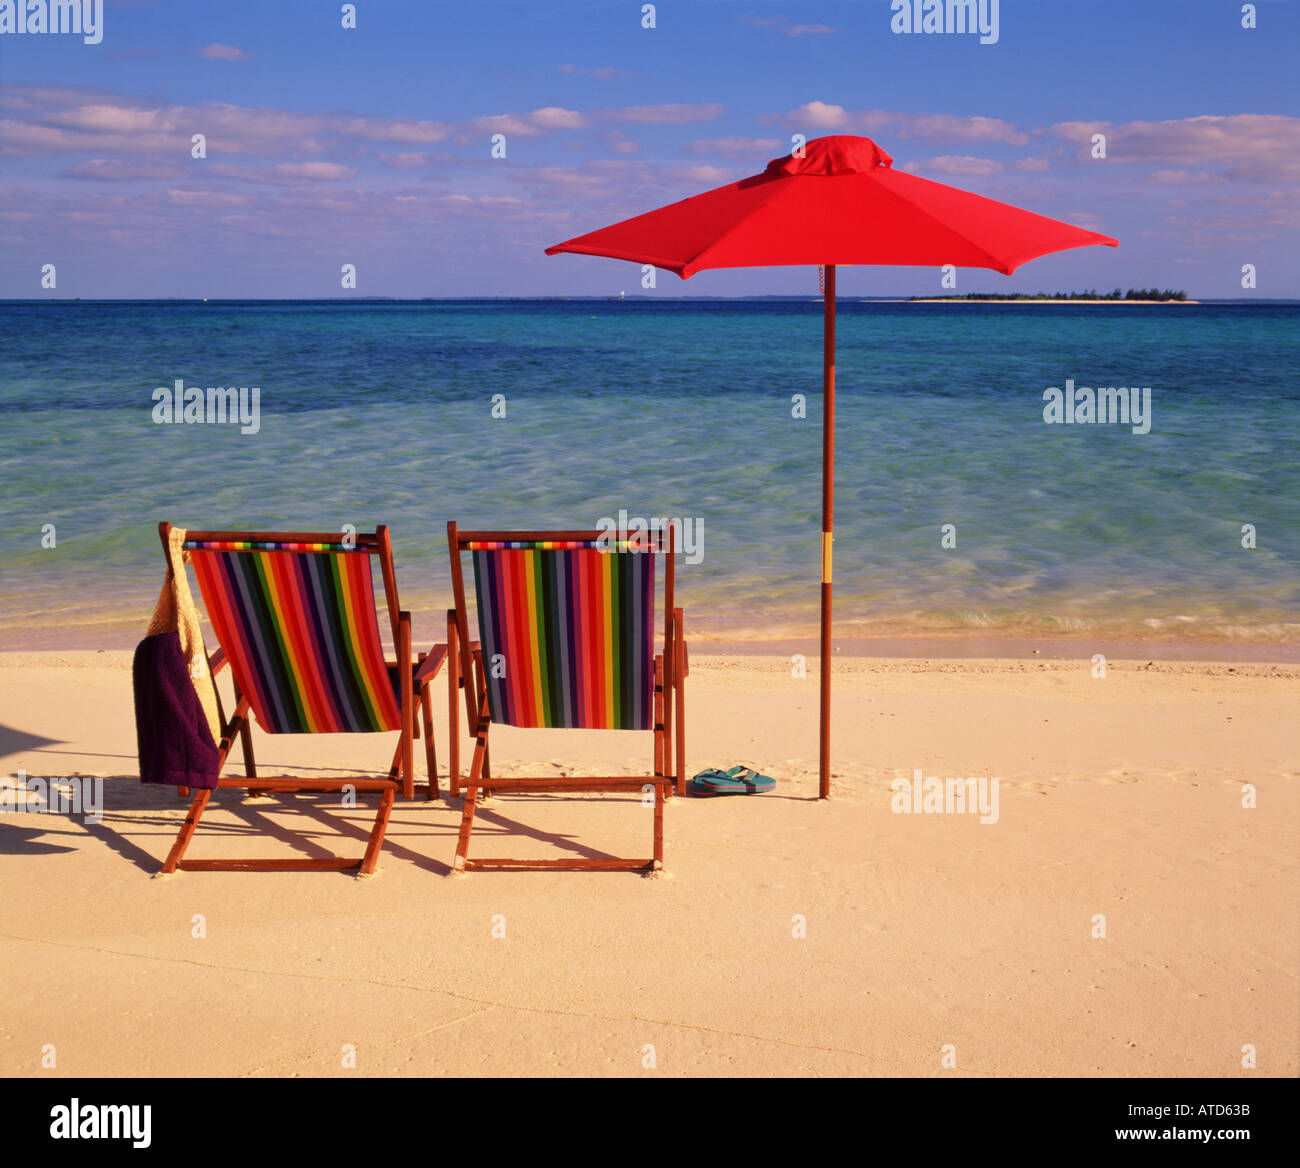 Tropical Scene Of Two Colorful Beach Chairs And An